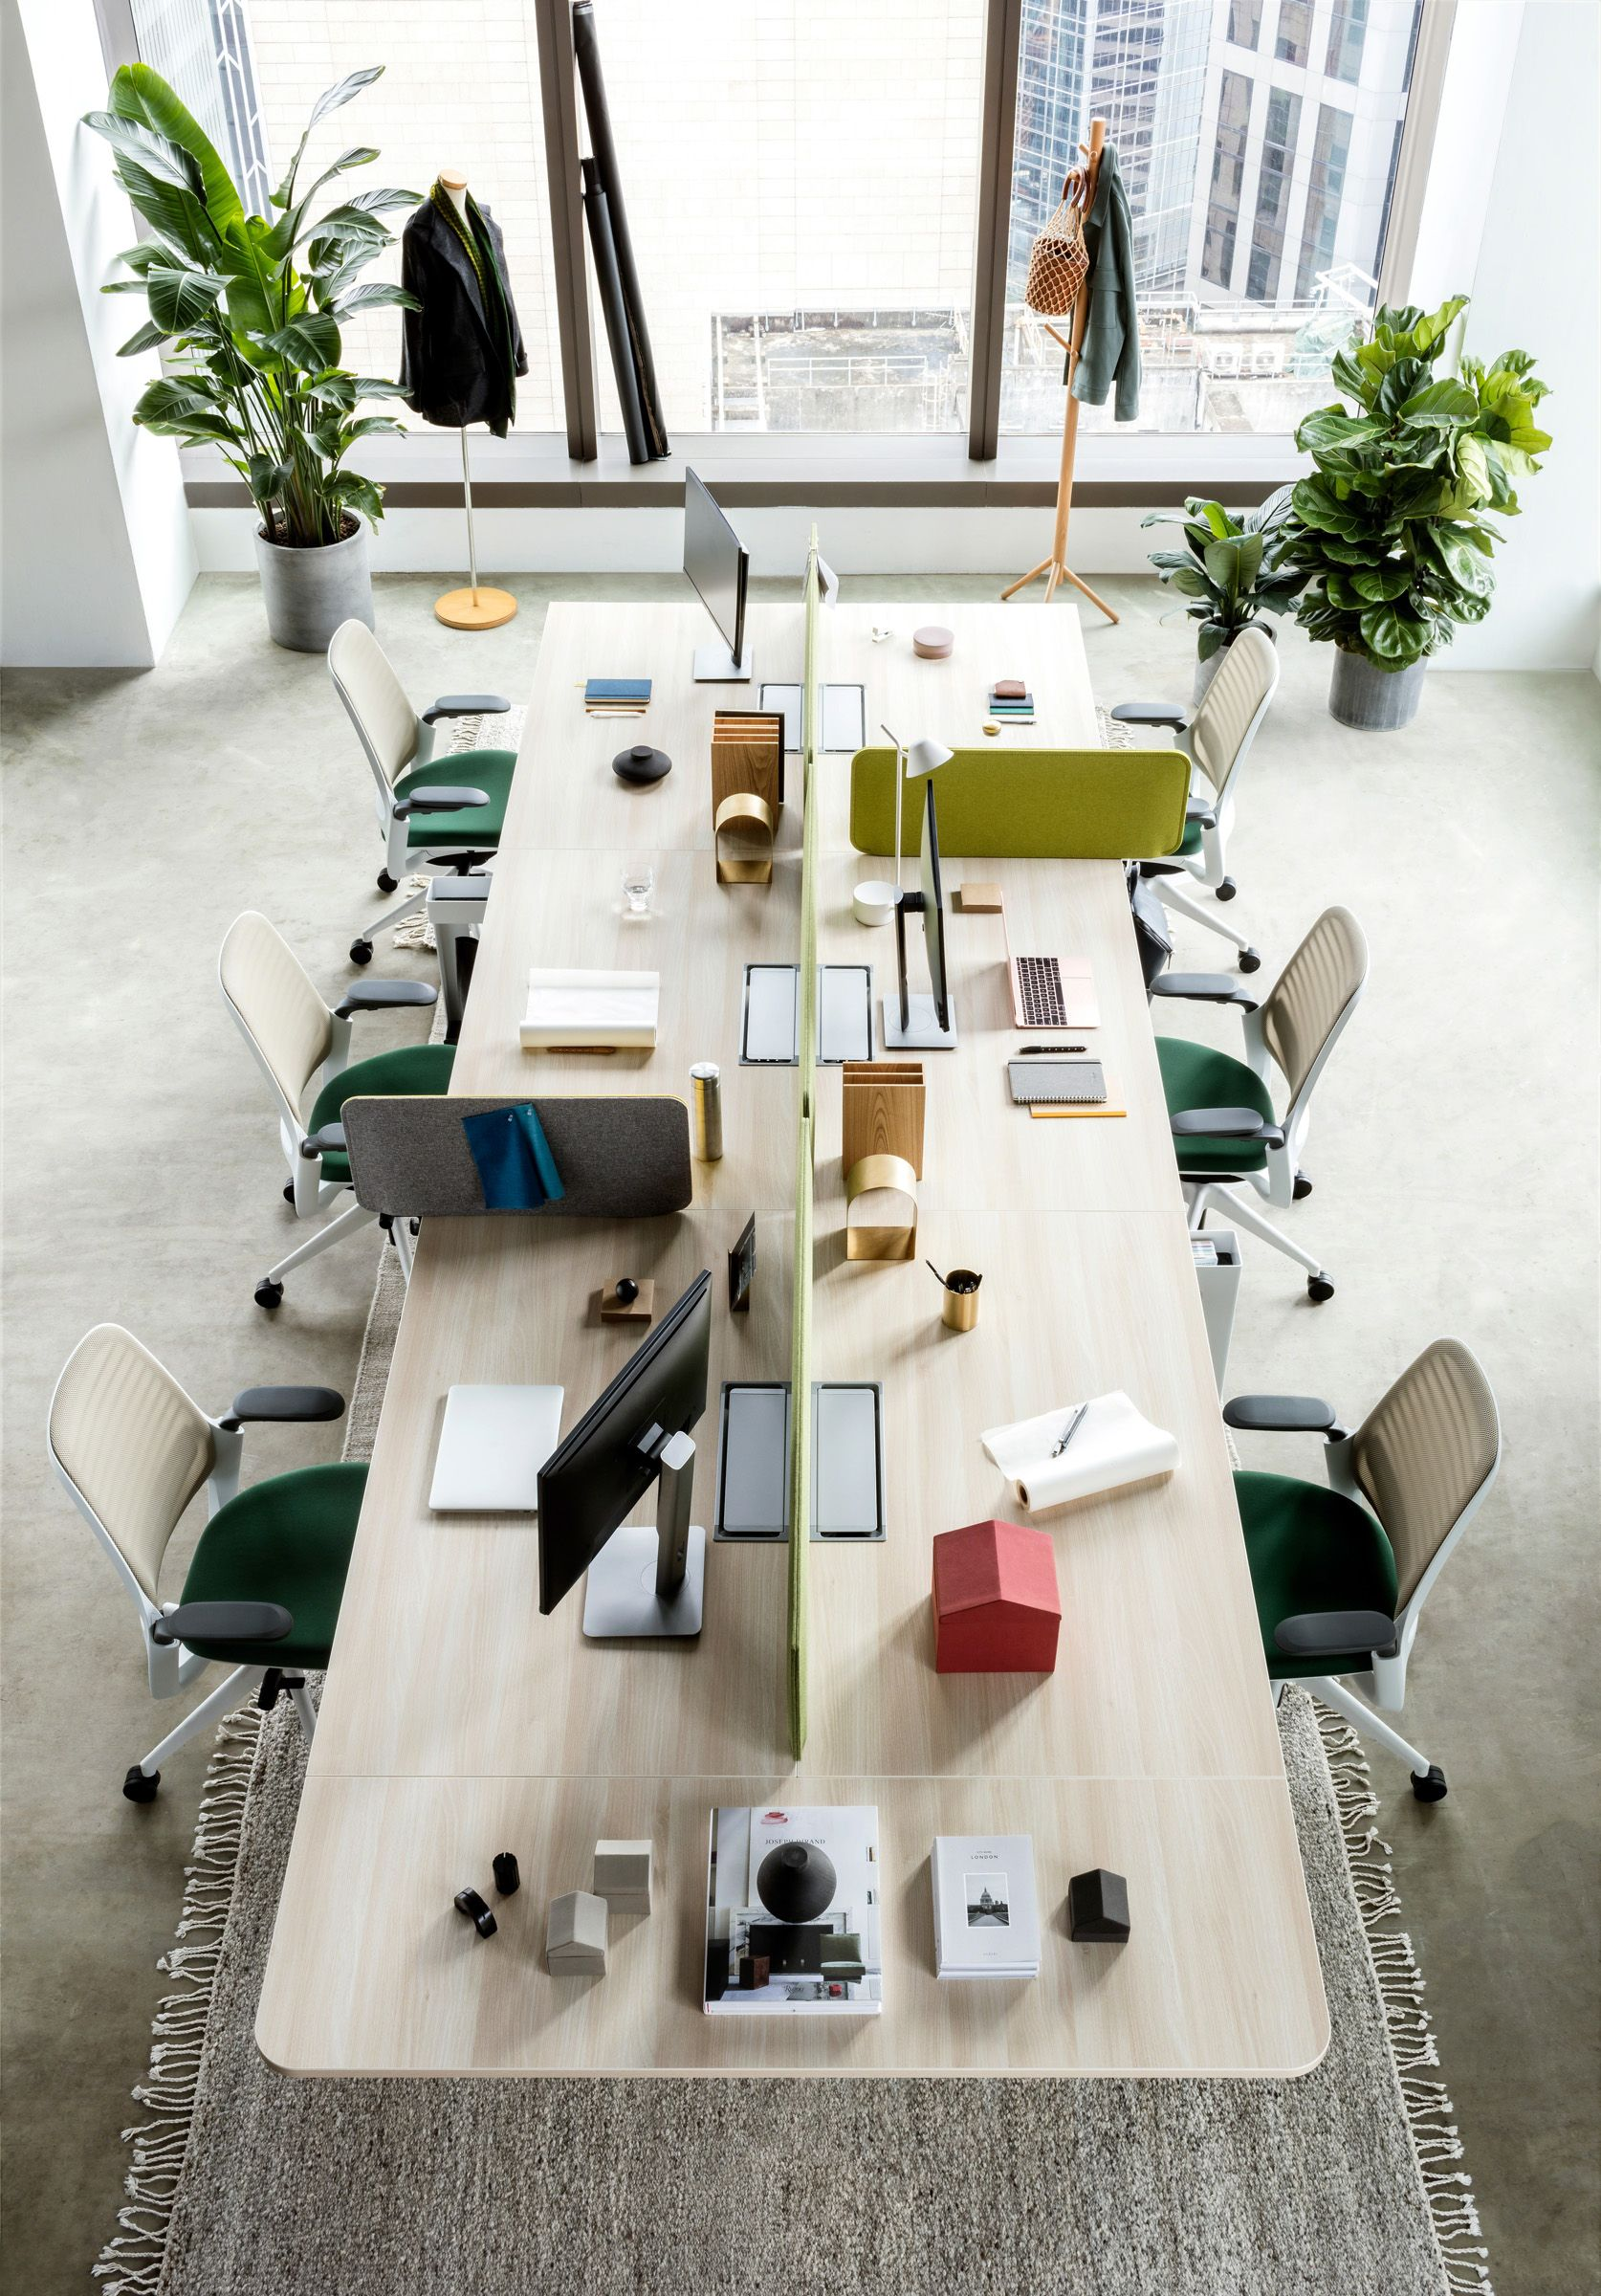 Sarto Screens by Steelcase Image Credit - Steelcase